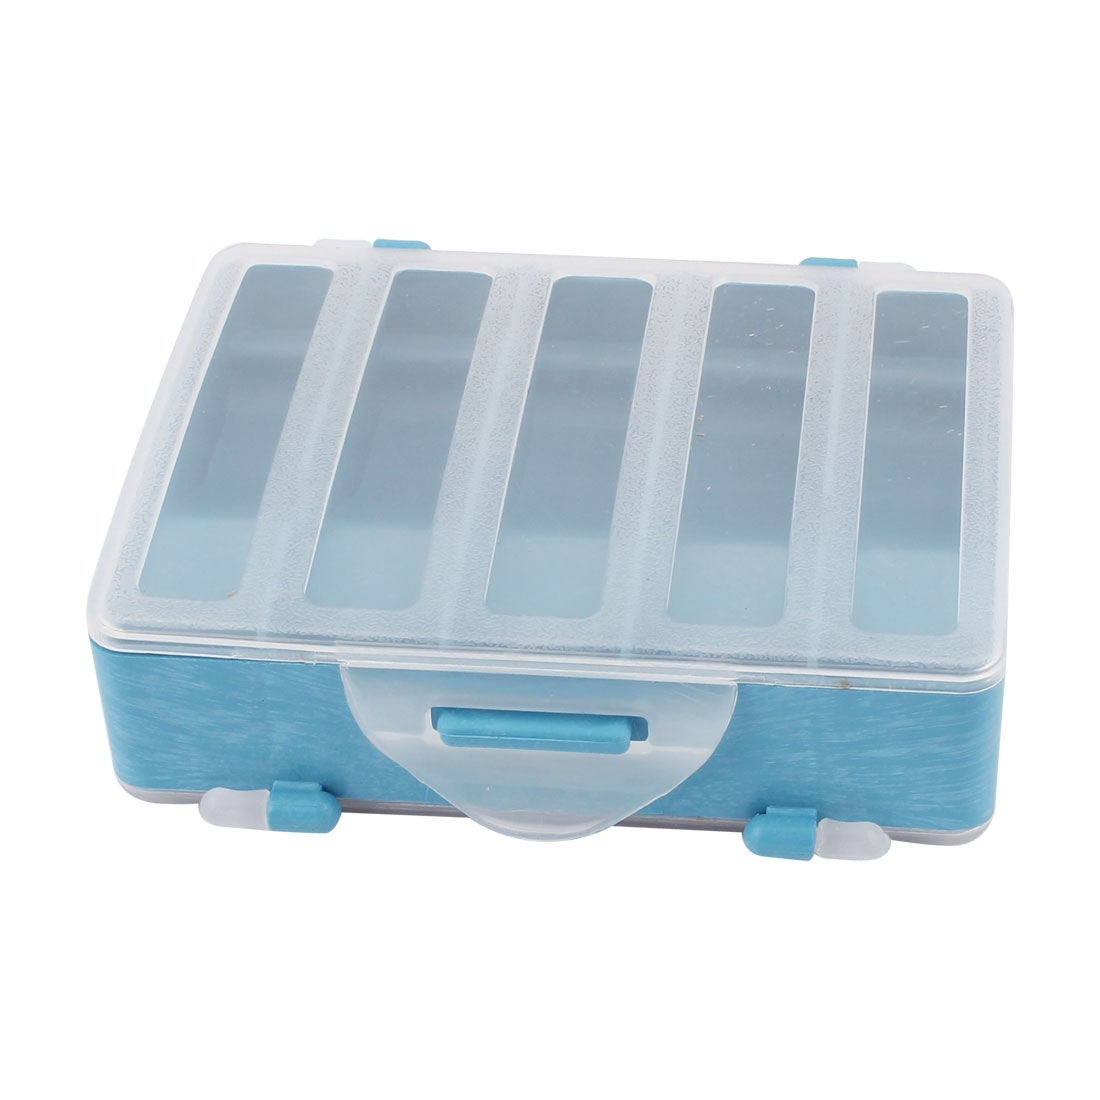 Unique Bargains Double Sides 10 Compartments Fishing Tackle Box Hook Lure Case